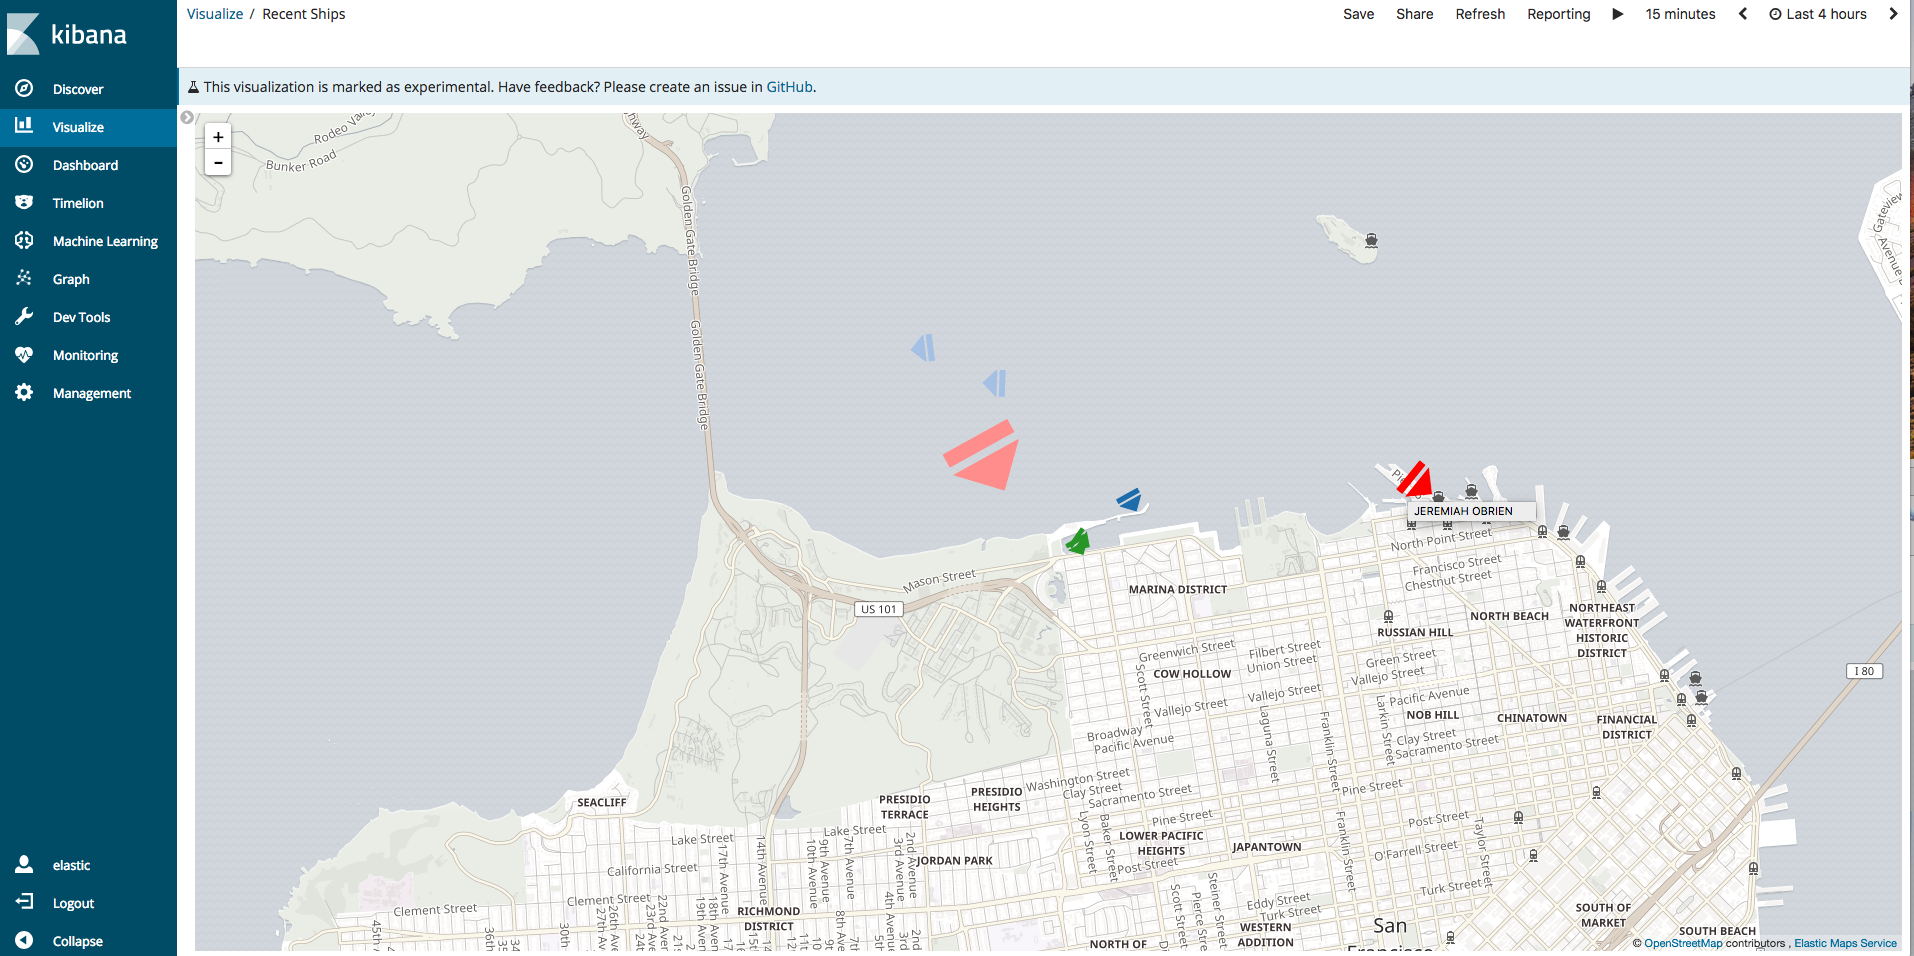 Tracking Nearby Ships with SDR, Elasticsearch, Kibana, and Vega